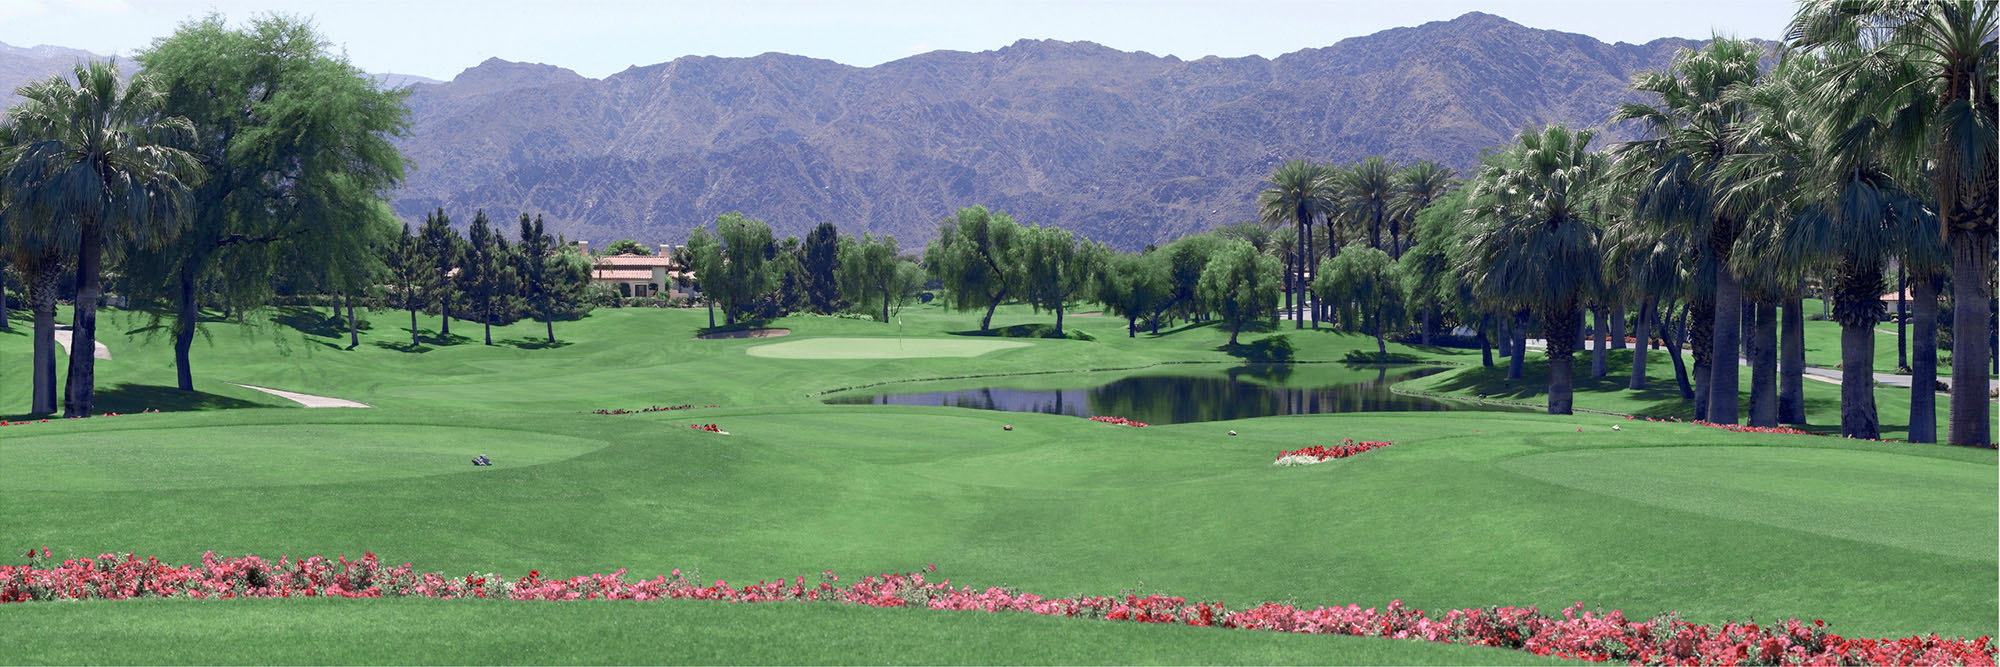 Golf Course Image - Rancho La Quinta Jones No. 2